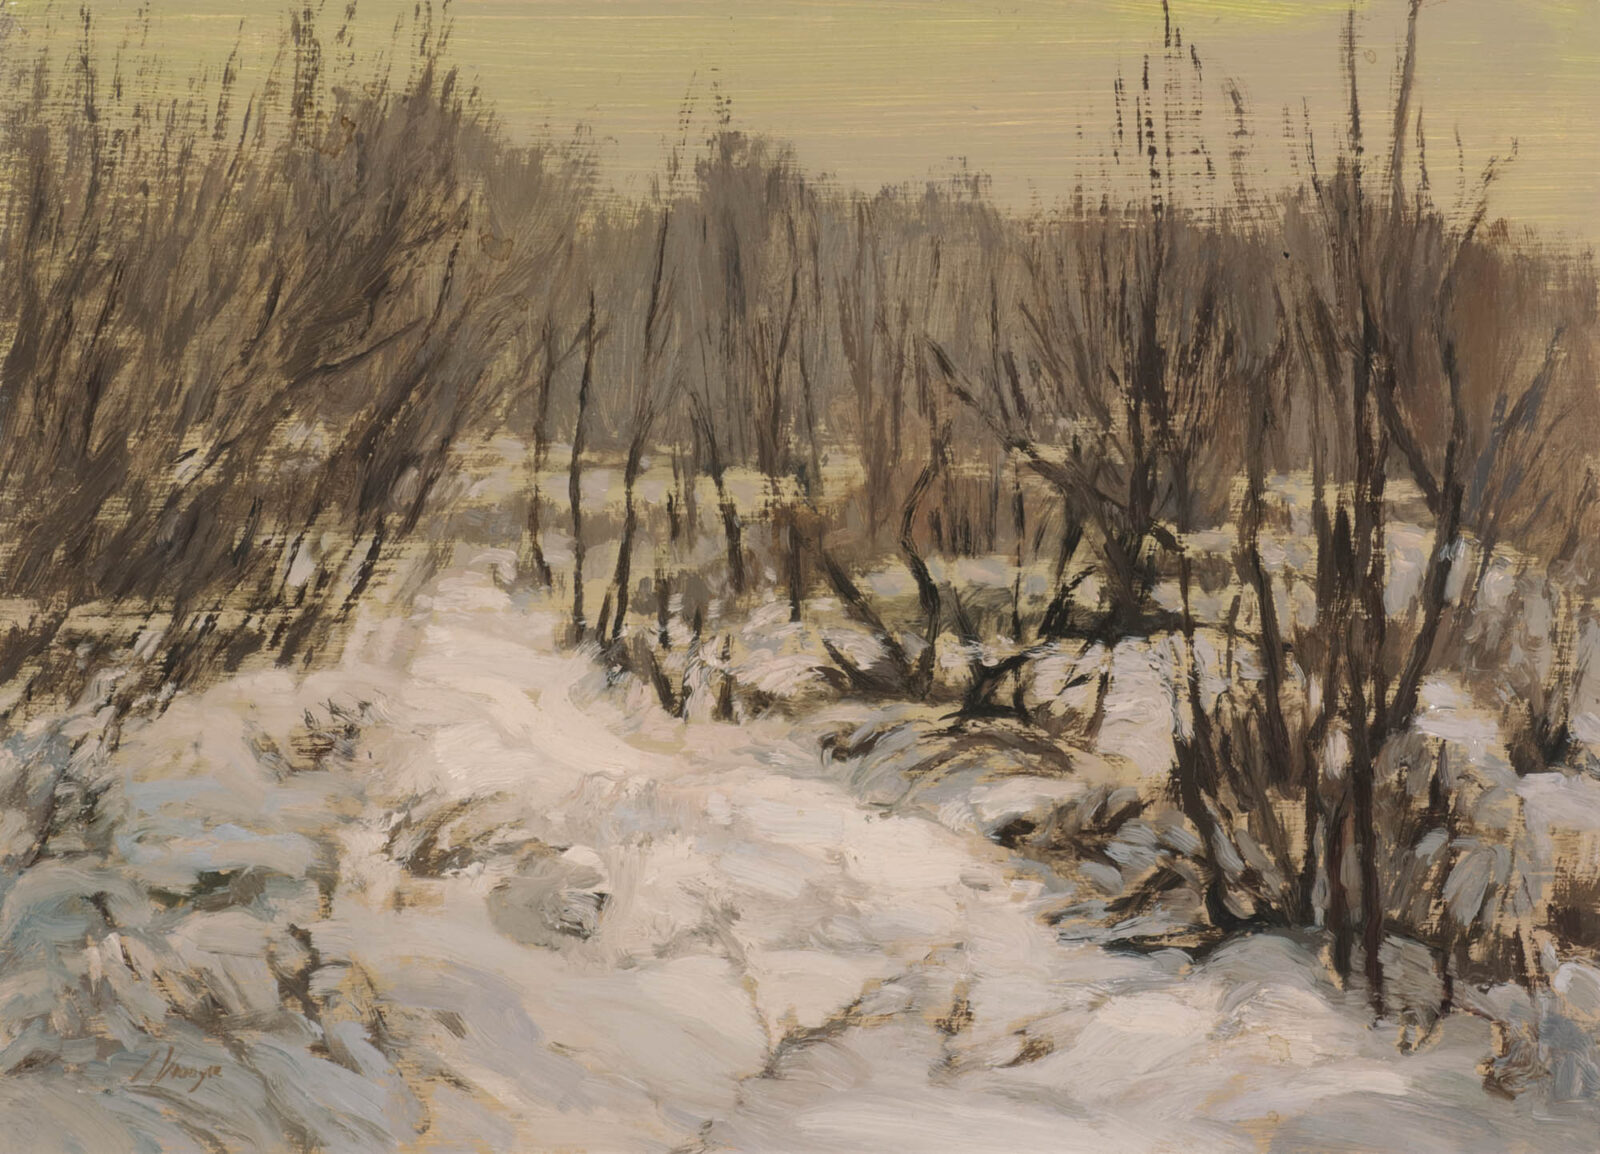 Liza Visagie - Silent Snow. Oil on Linen 6.5 x 9 inches